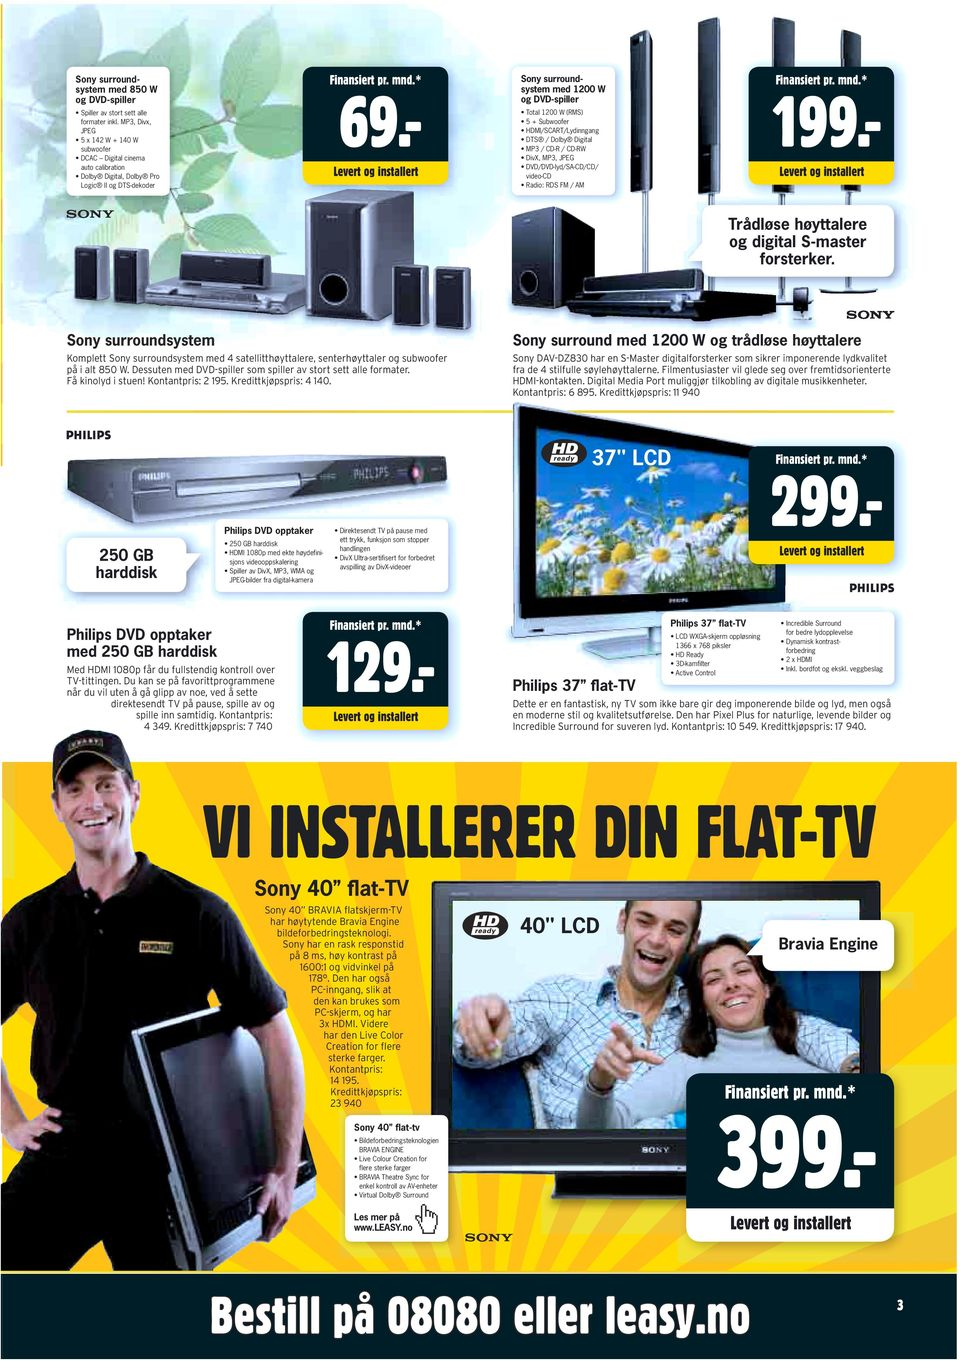 - Sony surround - system med 1200 W og DVD-spiller Total 1200 W (RMS) 5 + Subwoofer HDMI/SCART/Lydinngang DTS / Dolby Digital MP3 / CD-R / CD-RW DivX, MP3, JPEG DVD/DVD-lyd/SA-CD/CD/ video-cd Radio: